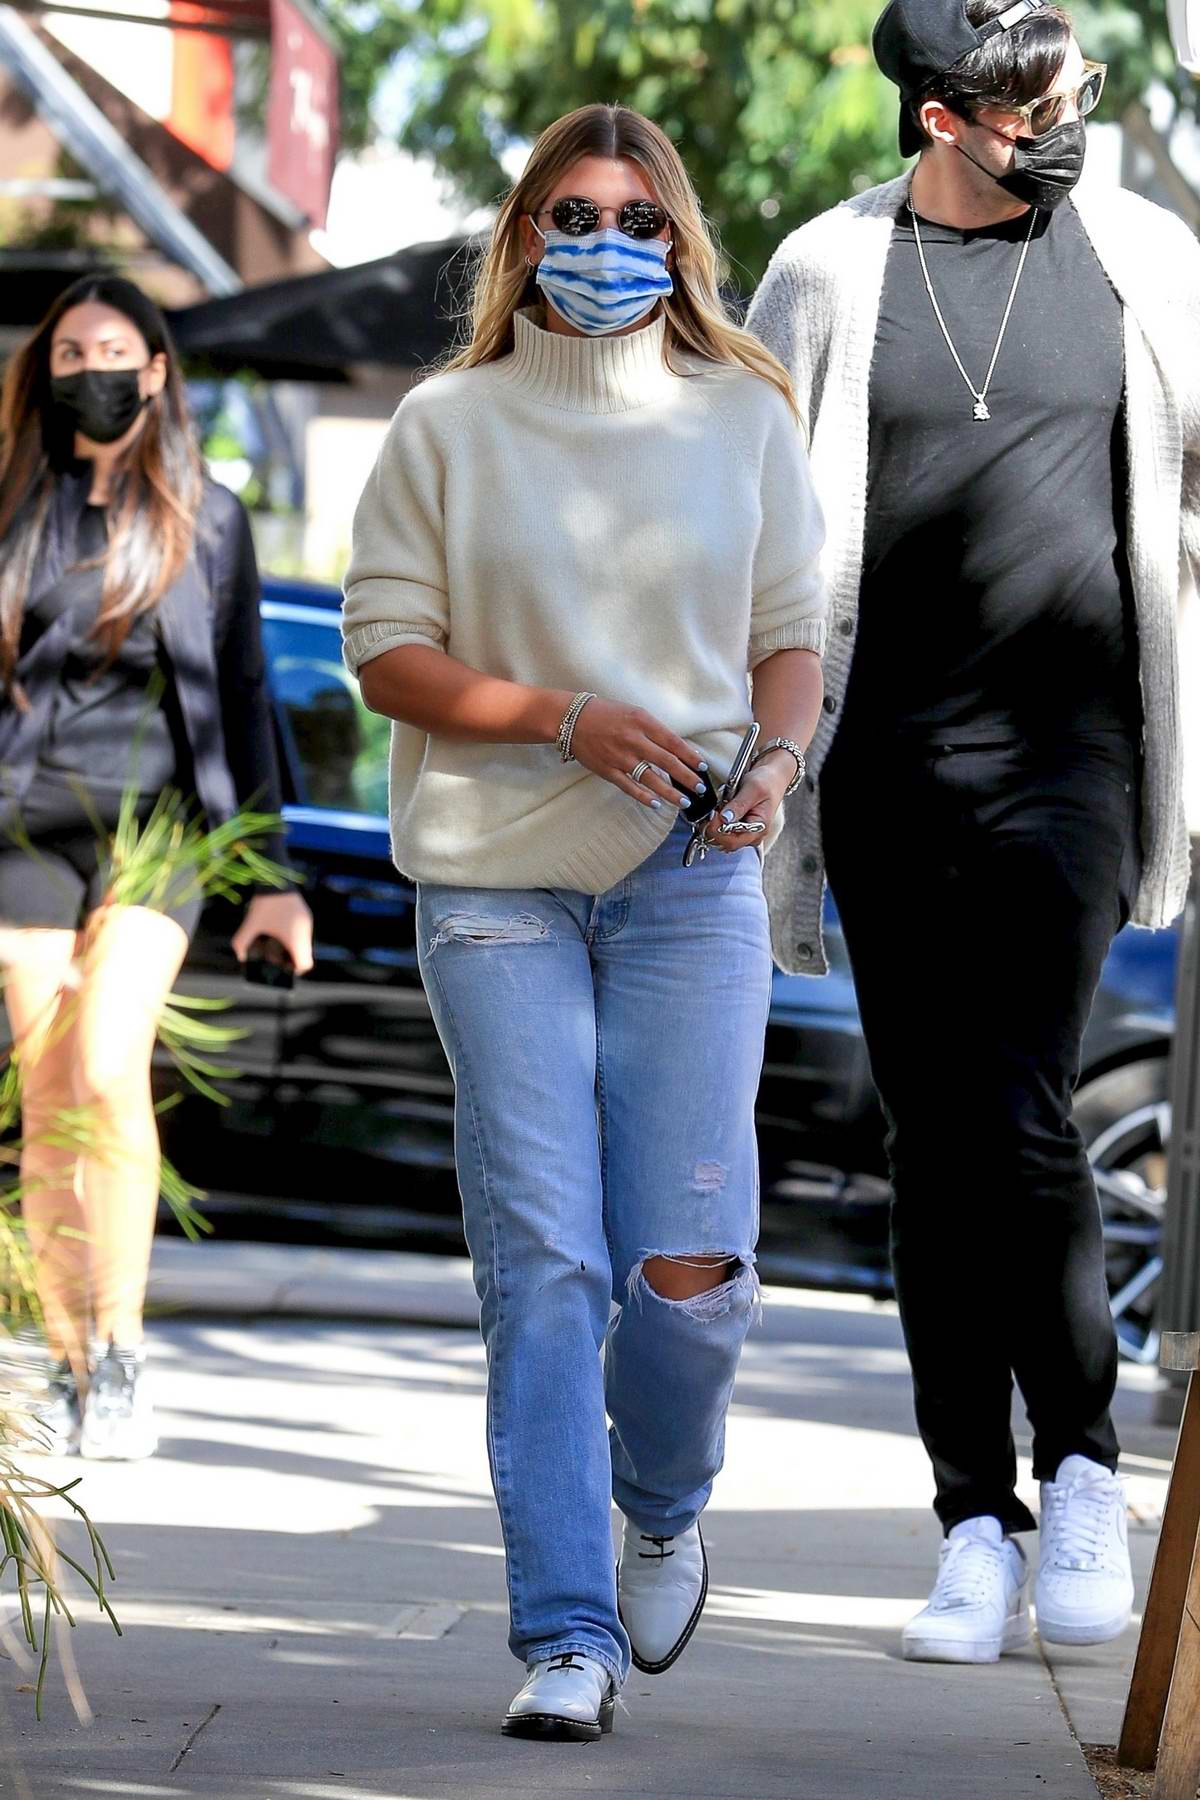 Sofia Richie steps out to pick up food to go with a friend in Beverly Hills, California